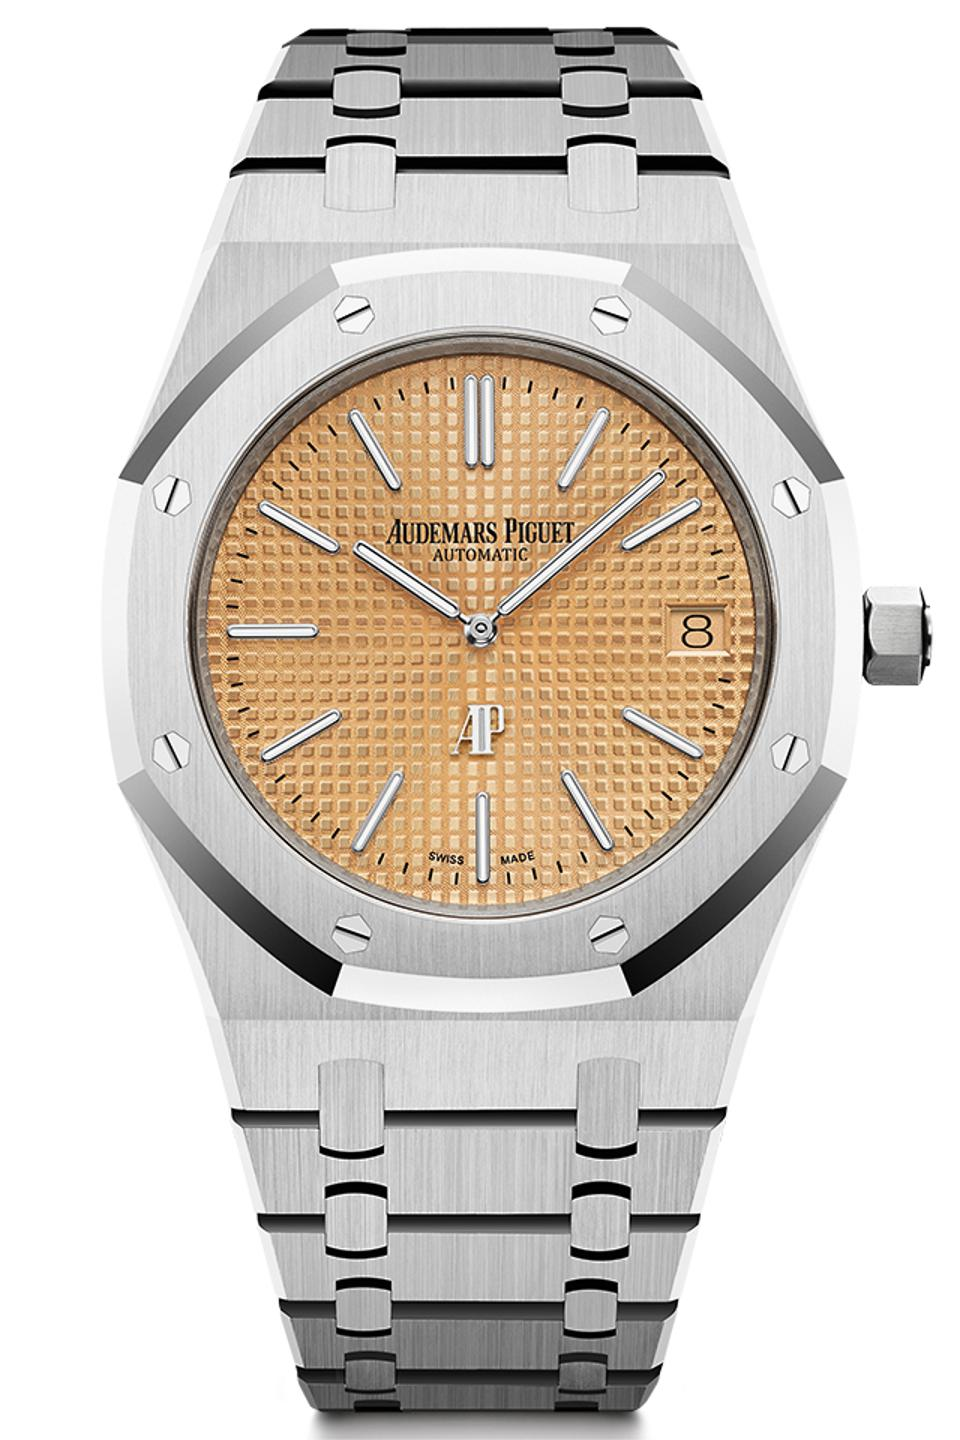 Audemars Piguet also won the Iconic Watch Prize for the Royal Oak Jumbo Extra-Thin.